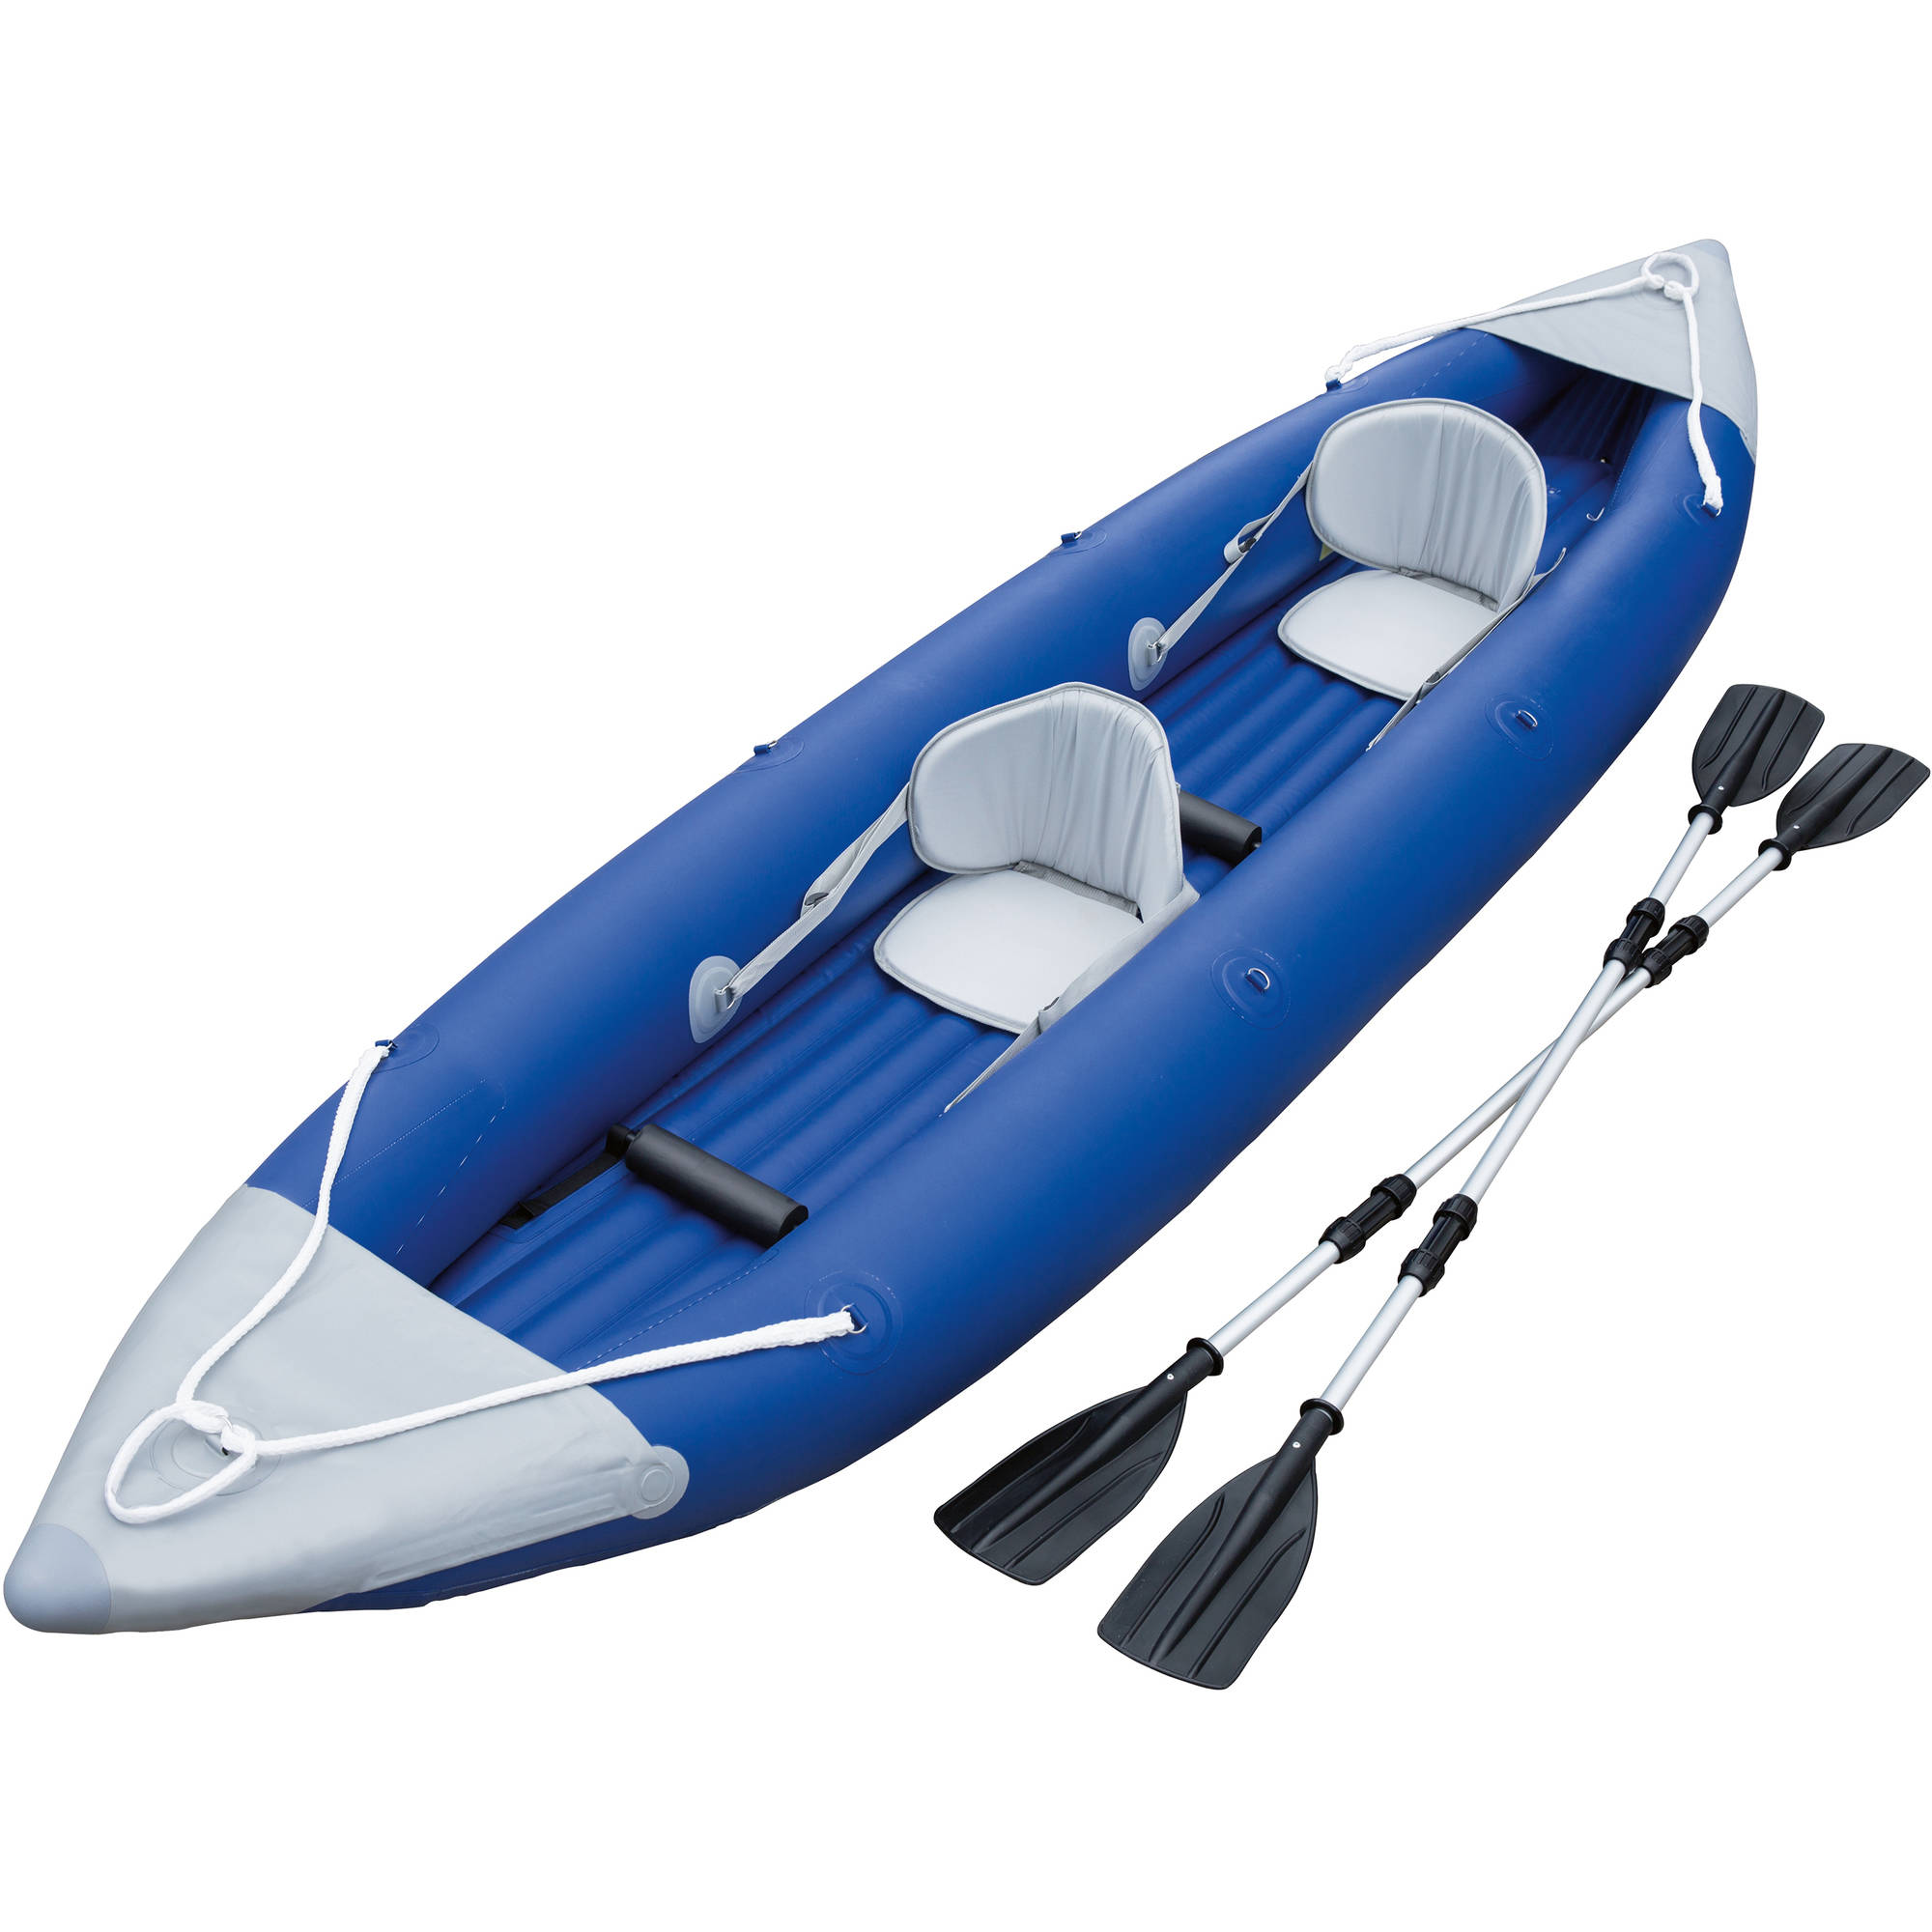 Ozark Trail 2-Person Bolt Inflatable Kayak with 2 Oars, Pump and Carry Bag by